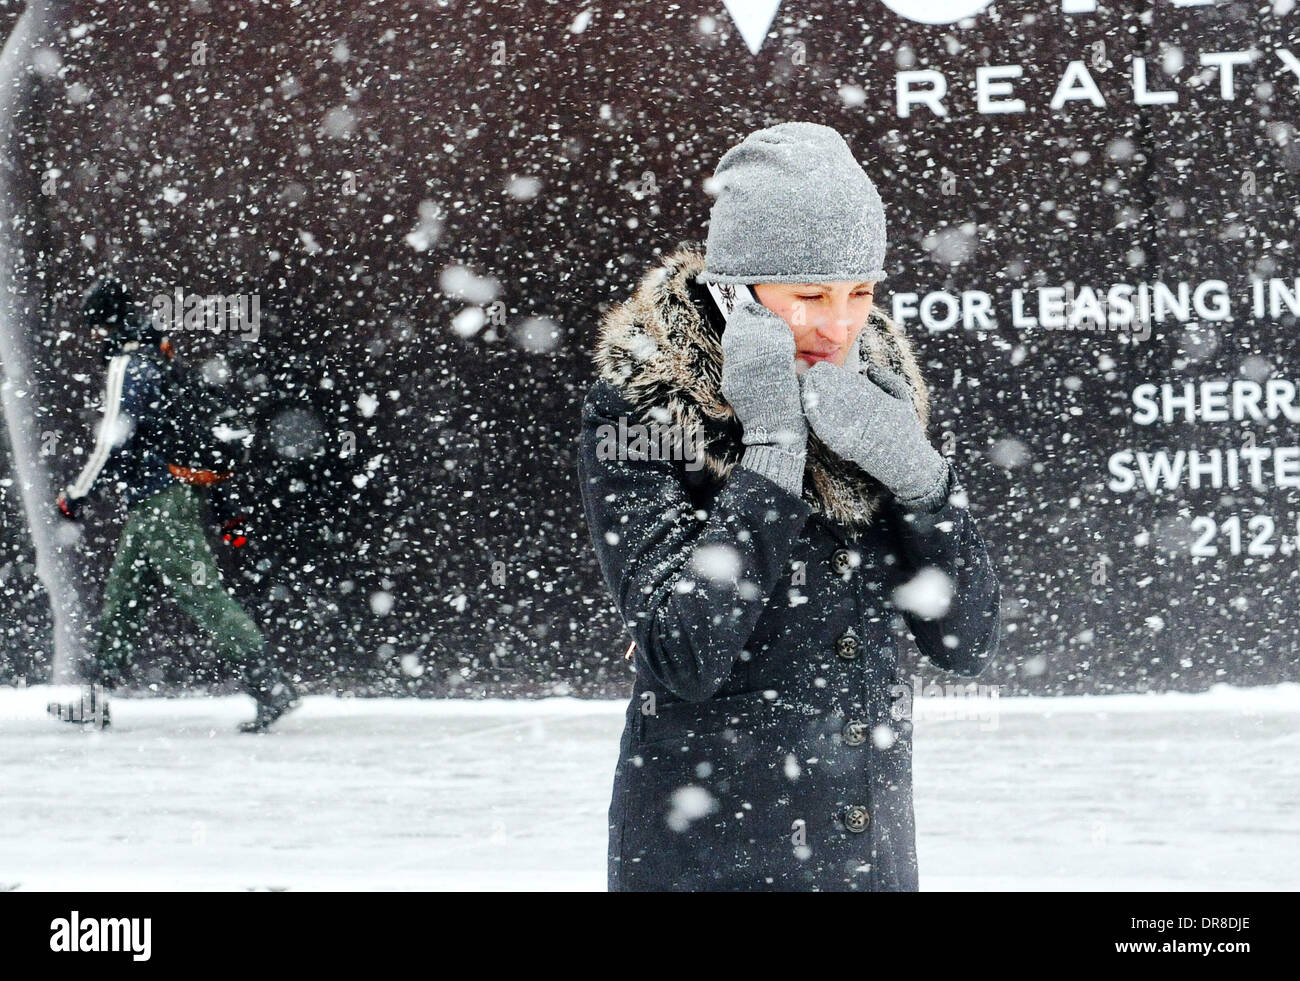 New York, NY, USA. 21st Jan, 2014. A woman walks in snowstorm at a street near the Times Square in New York City, Stock Photo